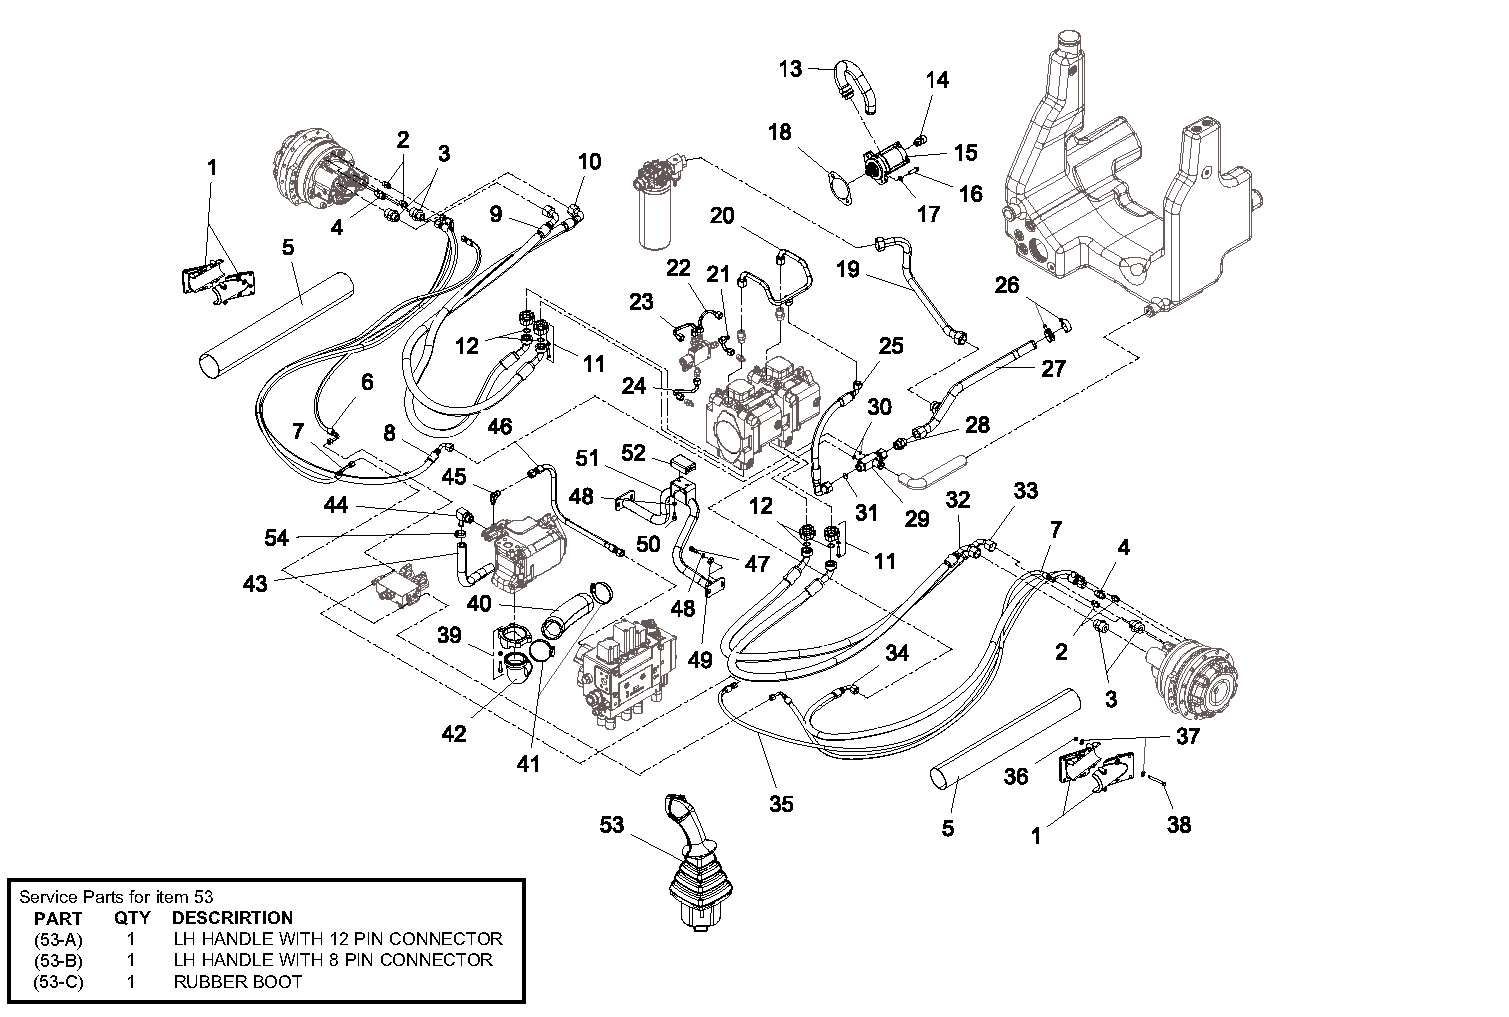 Diagram 3-11A Hydraulic Drive Auxiliary Assembly